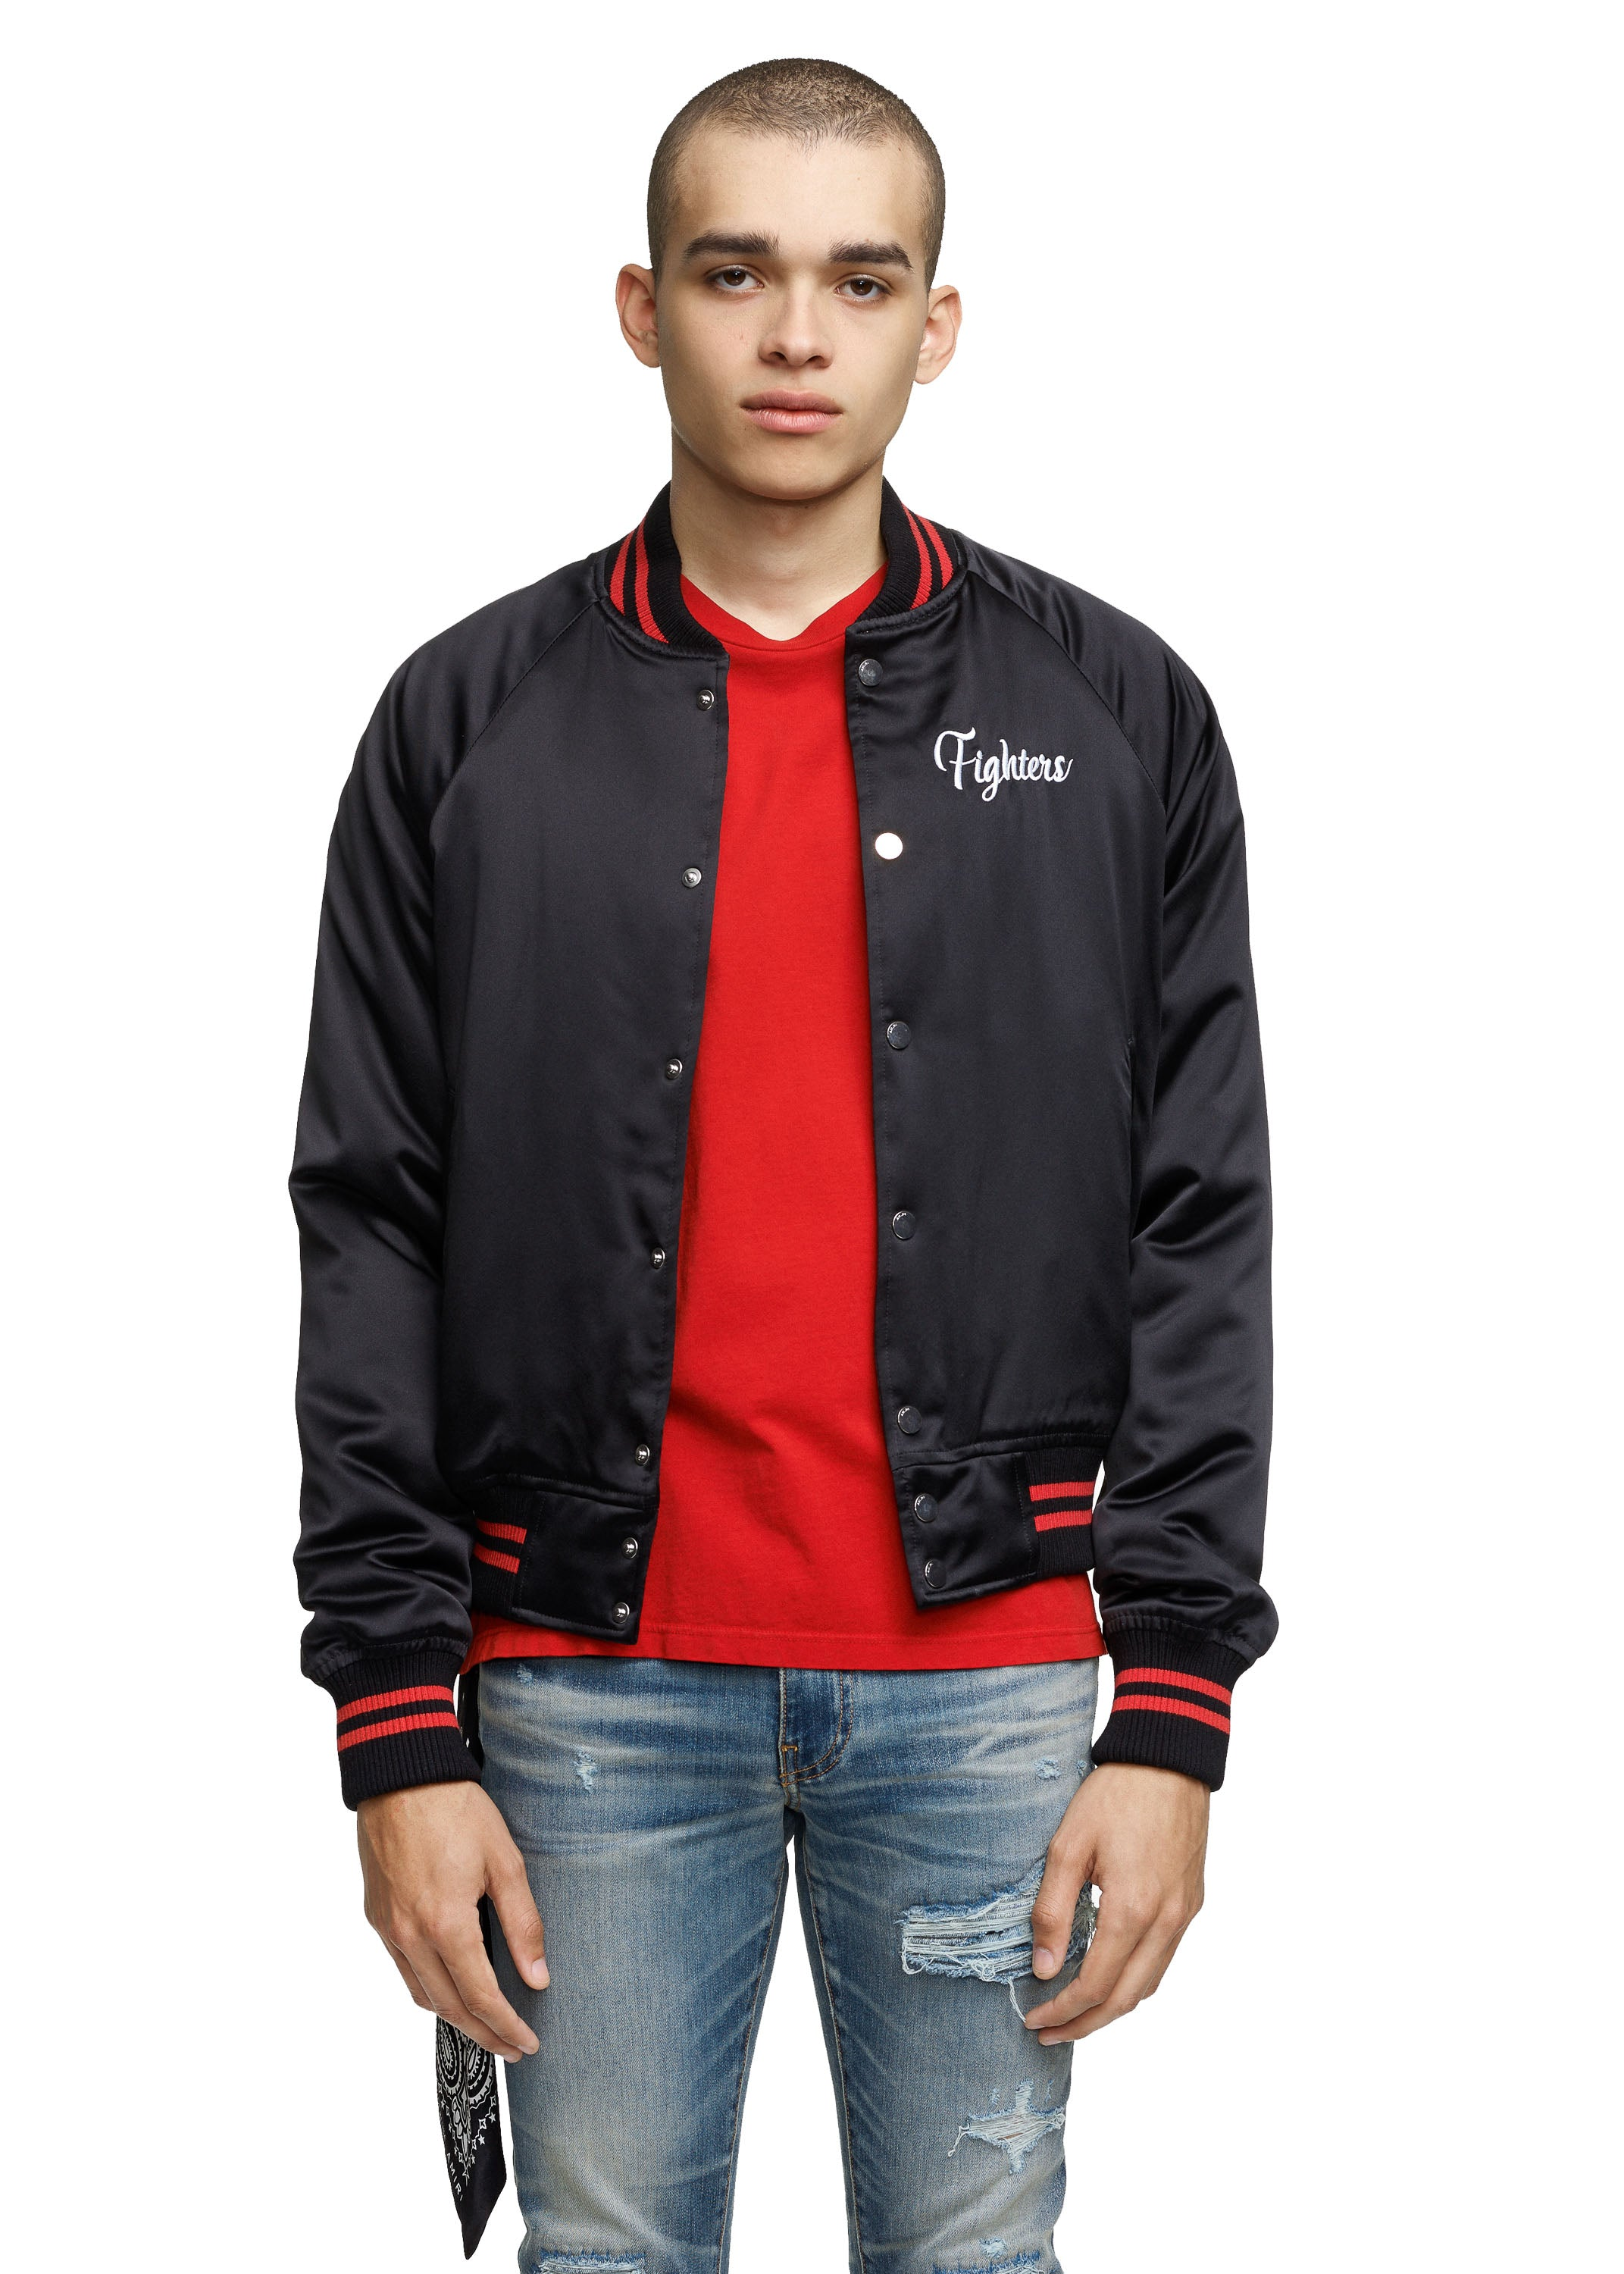 fighters-embroidered-baseball-jacket-black-red-image-1